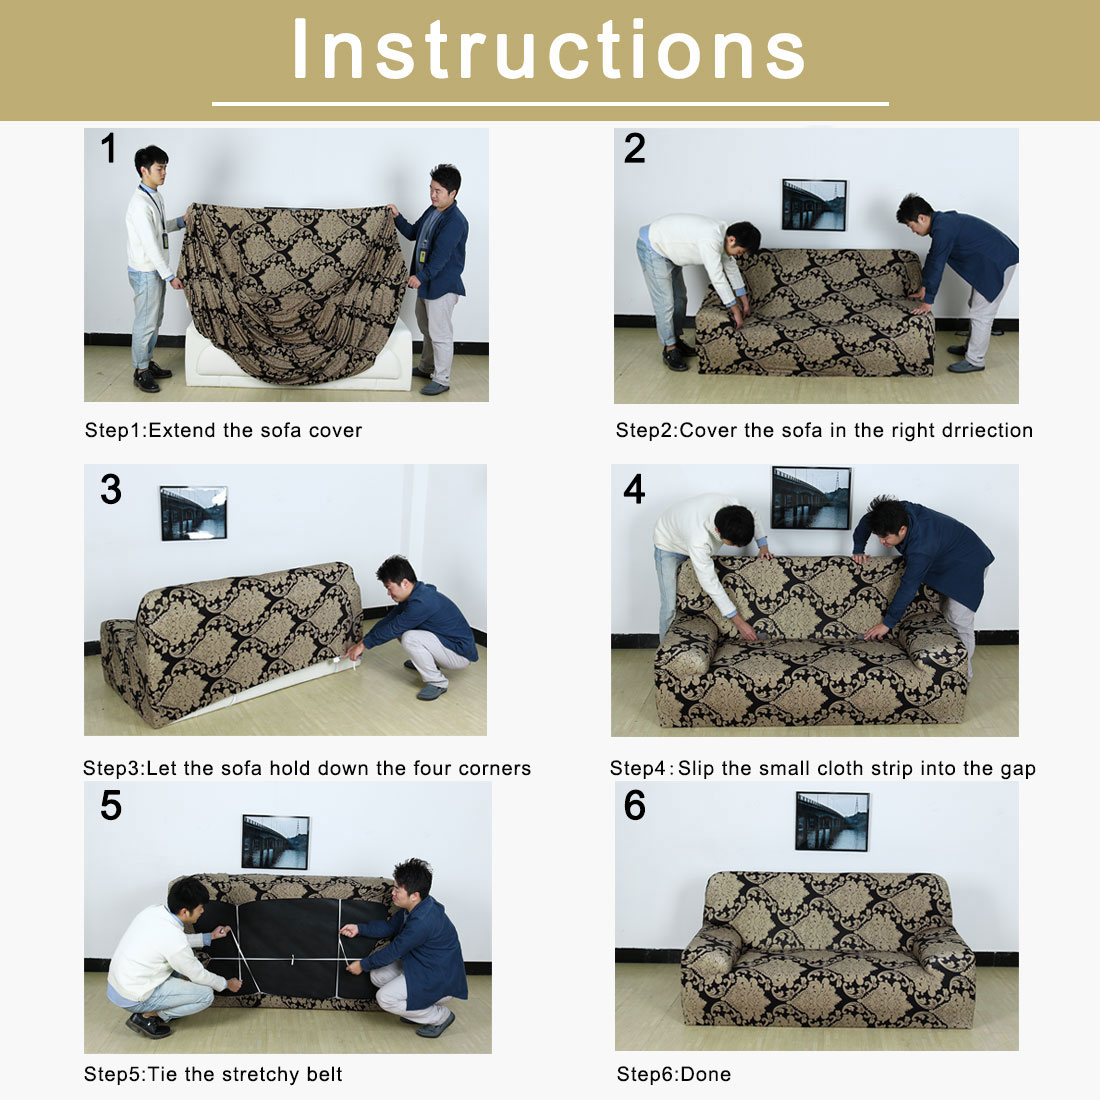 Home Sofa Cover 1 2 3 4 Seater Cover Full Covers Slipcover #1 (57 x 72 Inch) - image 6 de 7